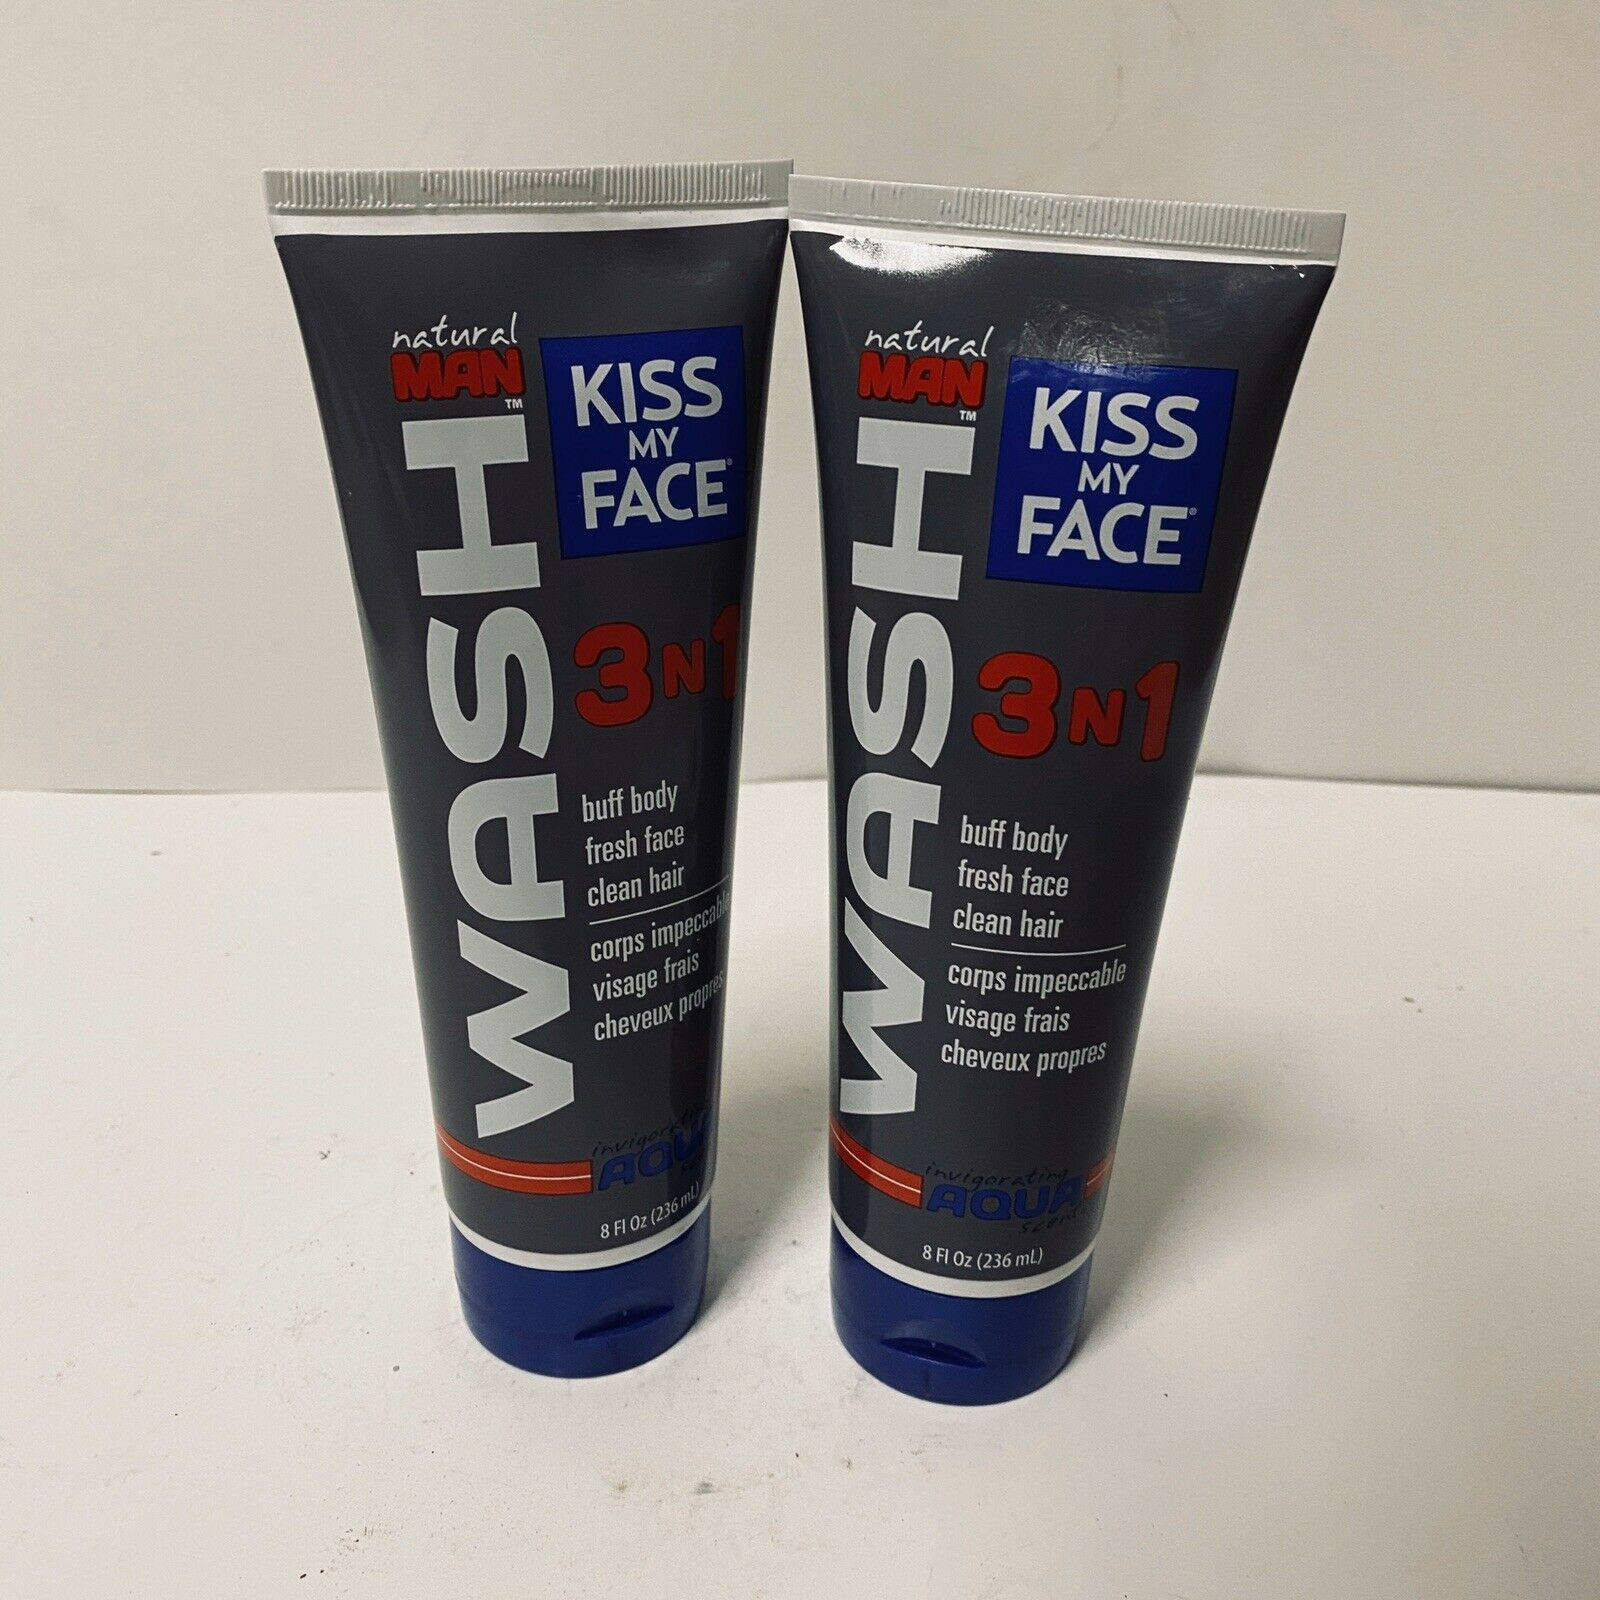 2x Kiss My Face Natural Man 3 in 1 Body Wash 8oz Aqua Scent Discontinued - $34.99